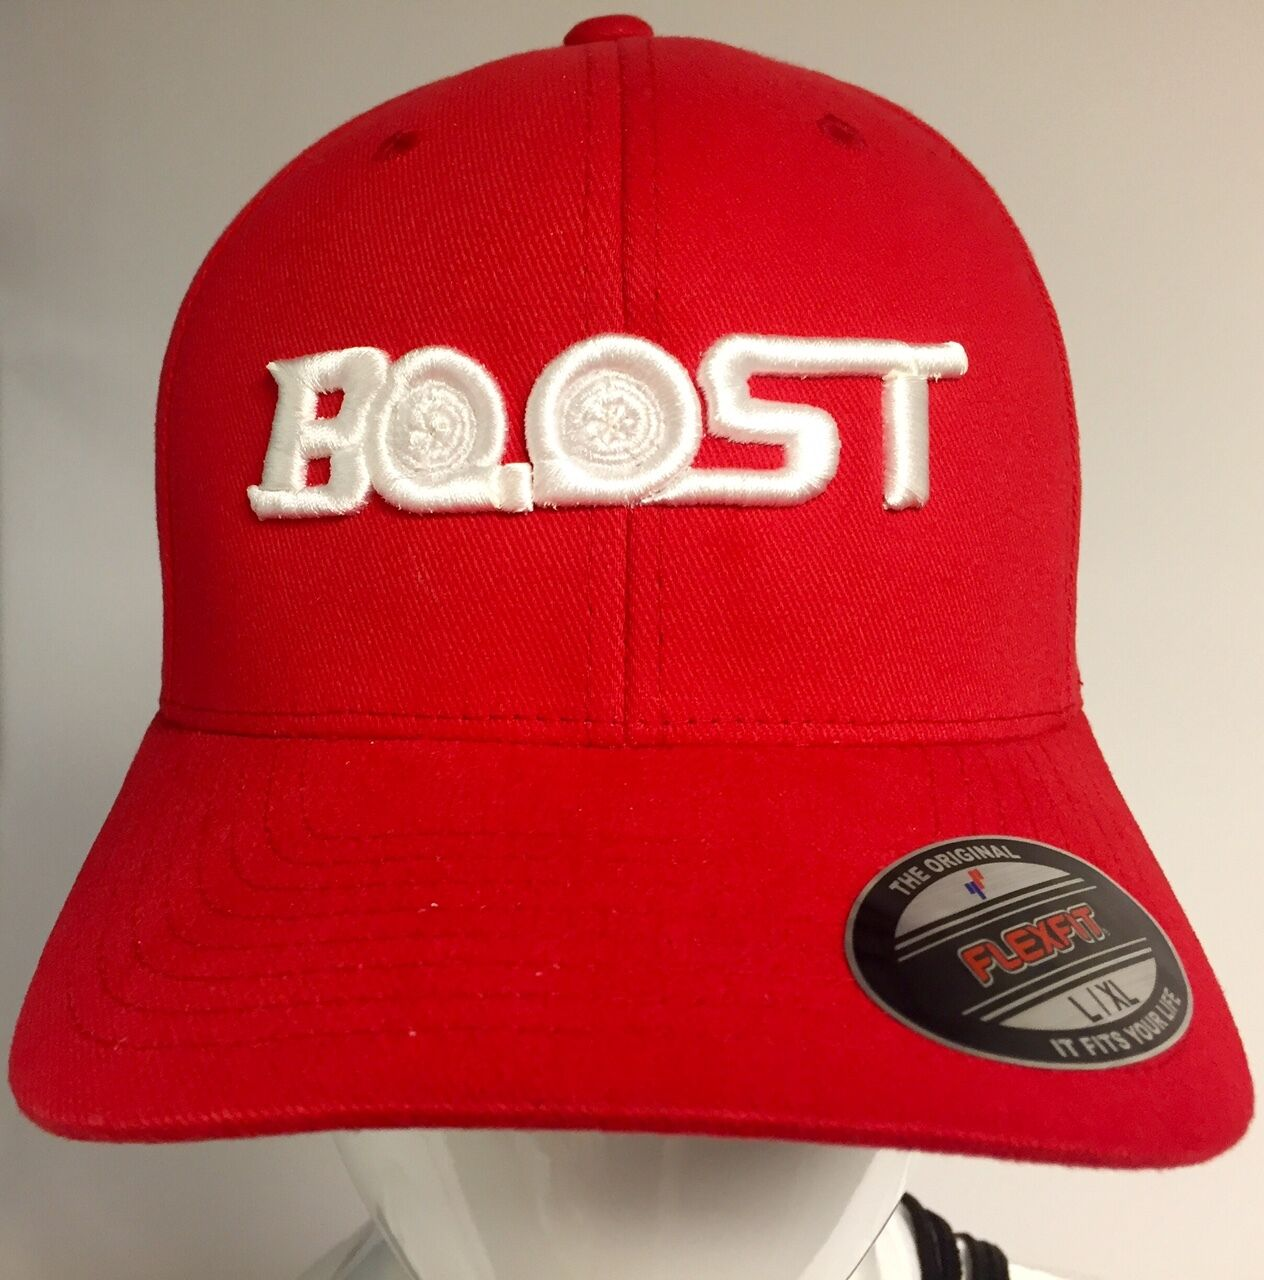 Boost Embroidery Turbo Tuner Graphic Flex Fit Hat Free Shipping Ebay